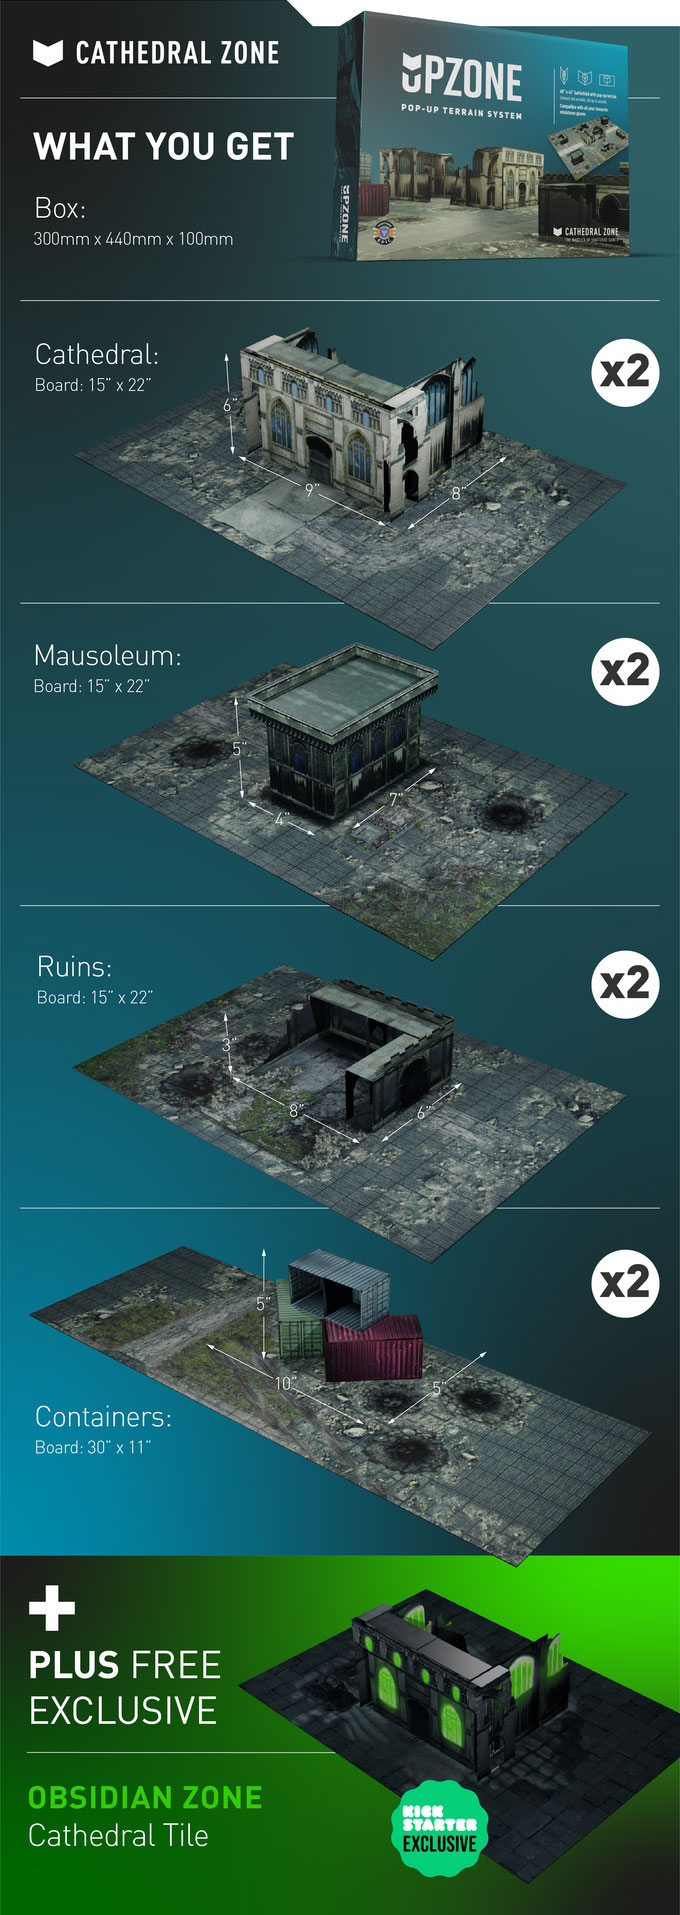 Upzone Pop-up Game Terrain System